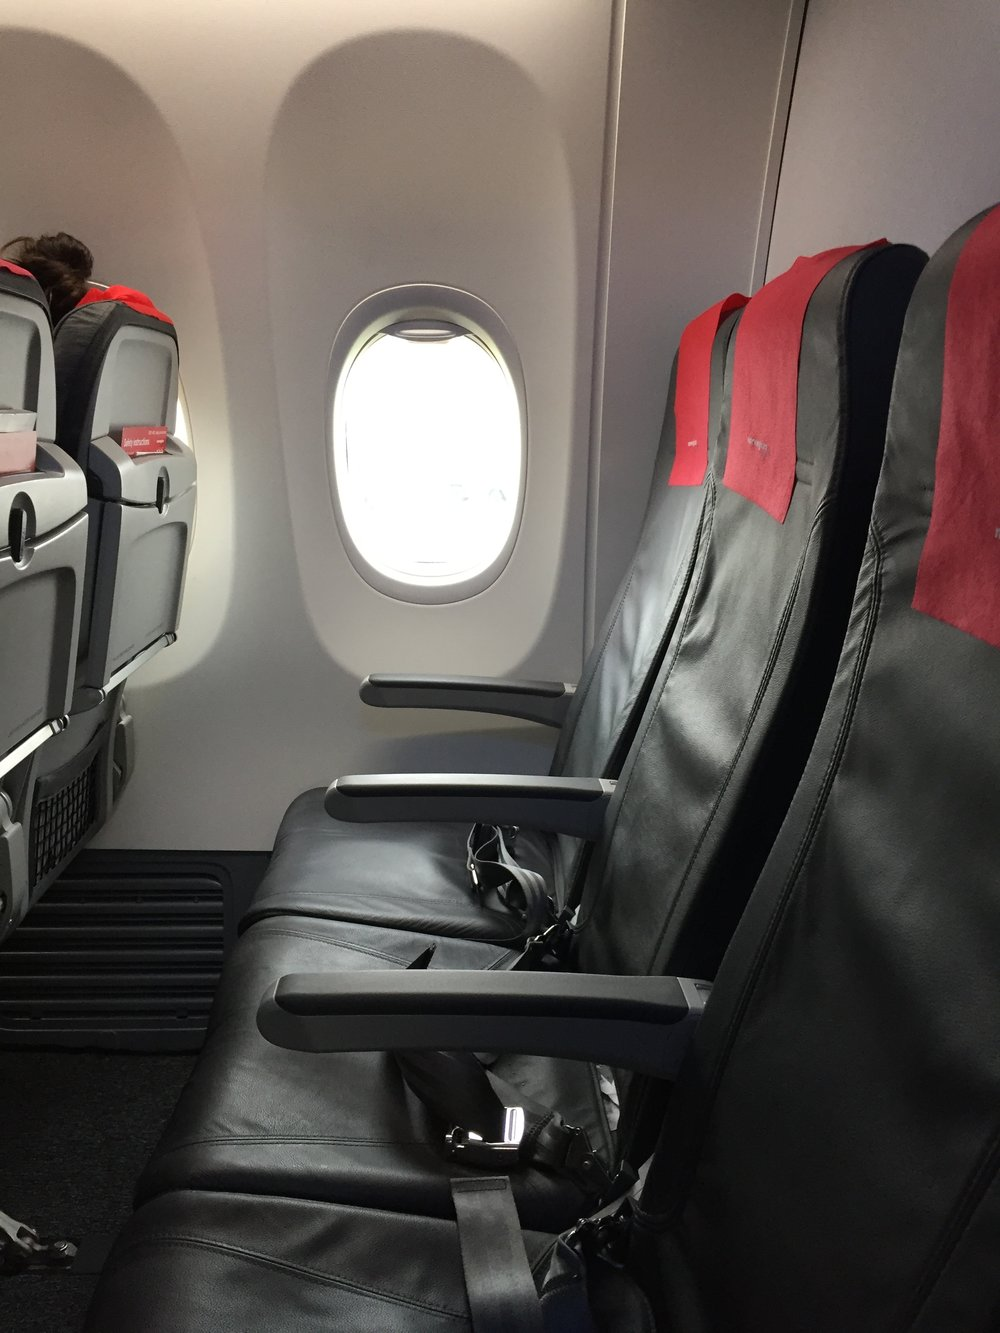 Norwegian cabin interior seats.JPG